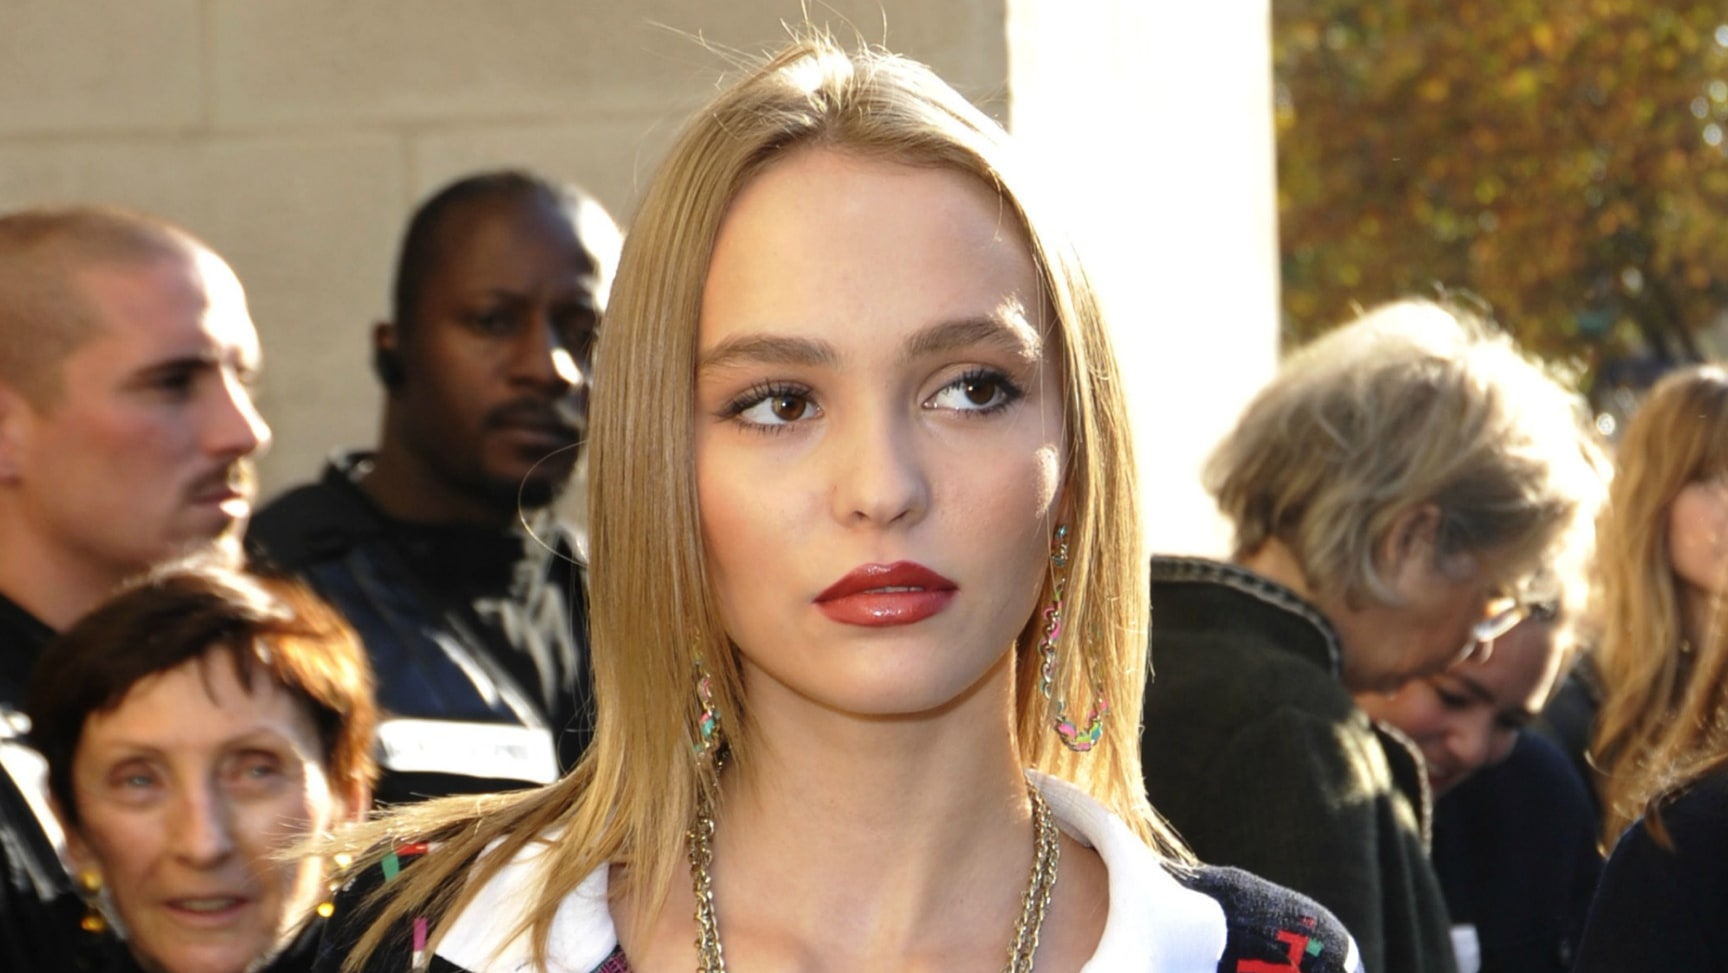 8 Things You Must Know About Johnny Depp's Daughter Lily-Rose – SheKnows